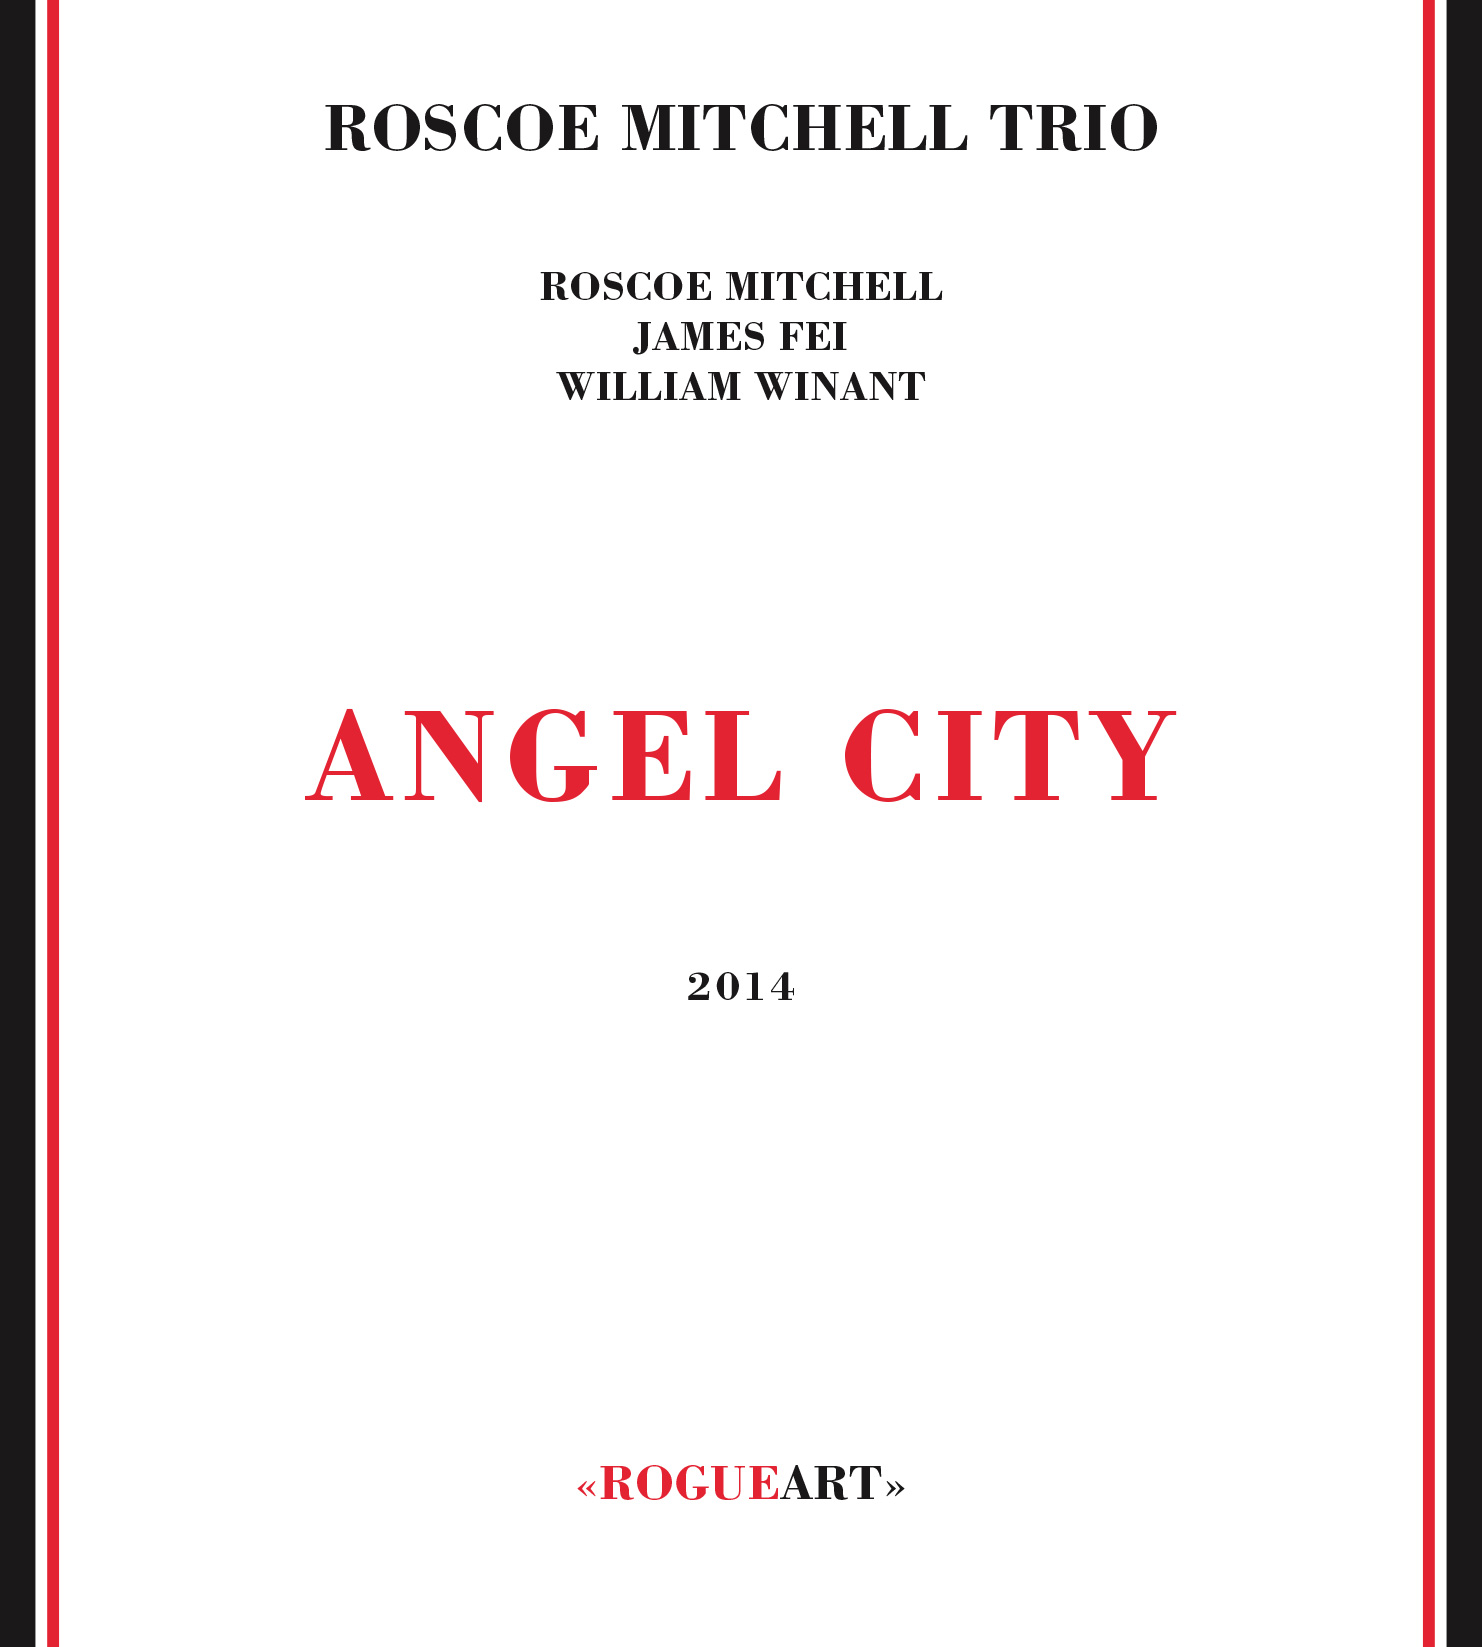 Front cover of the album ANGEL CITY